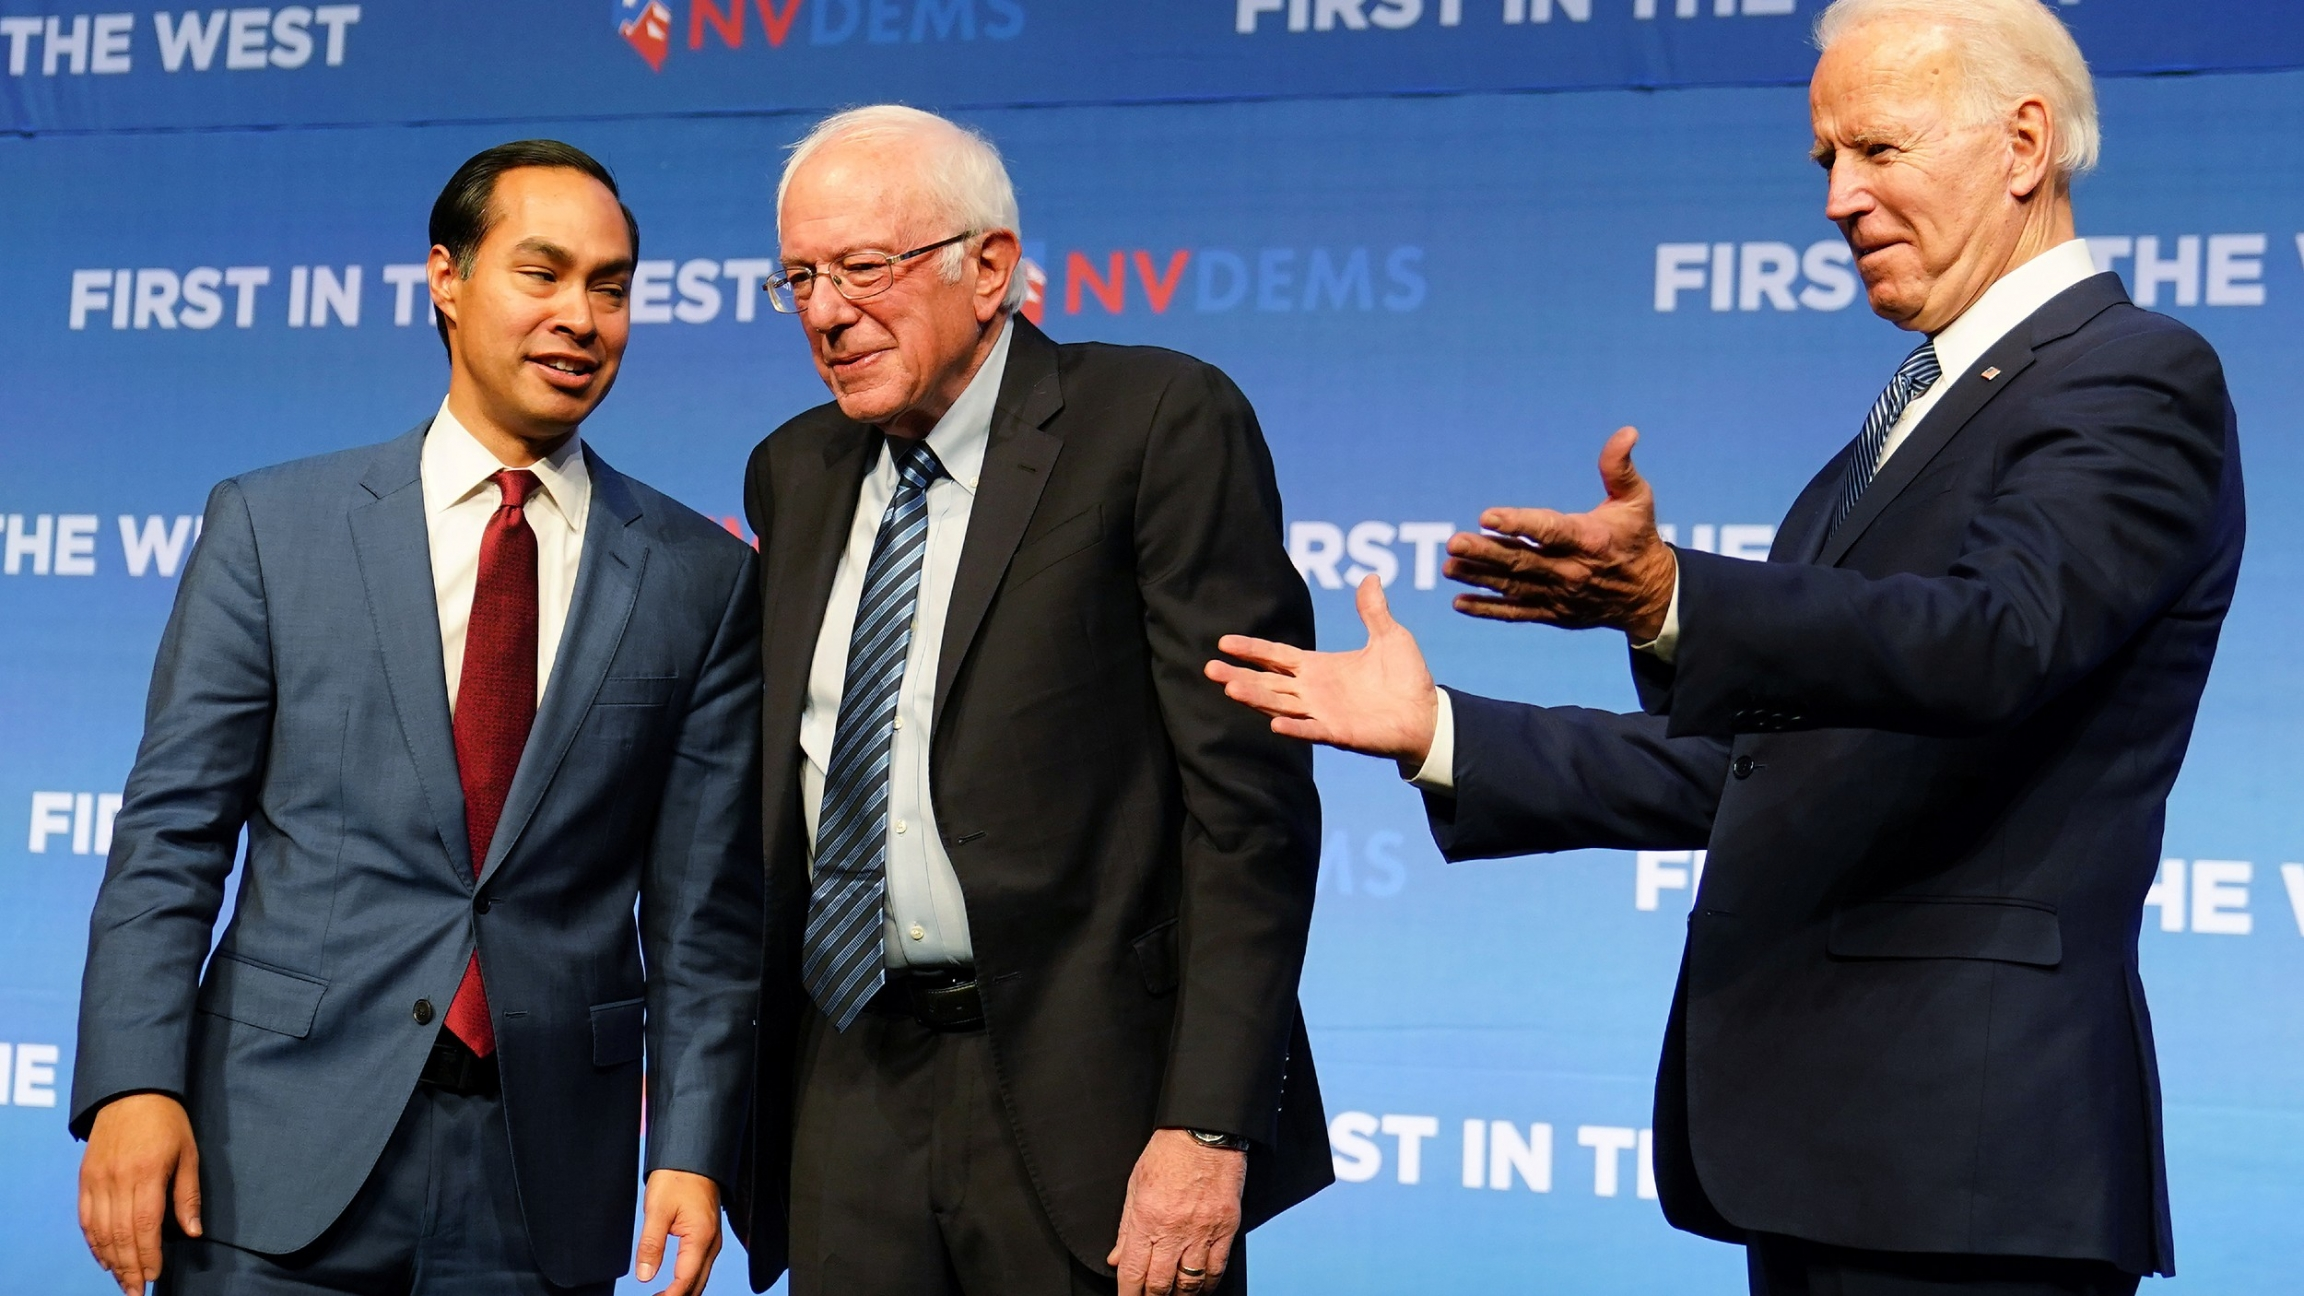 In this file photo, Democratic US presidential candidates Julian Castro, Bernie Sanders and Joe Biden are pictured on stage at a First in the West Event at the Bellagio Hotel in Las Vegas, Nevada, Nov. 17, 2019.